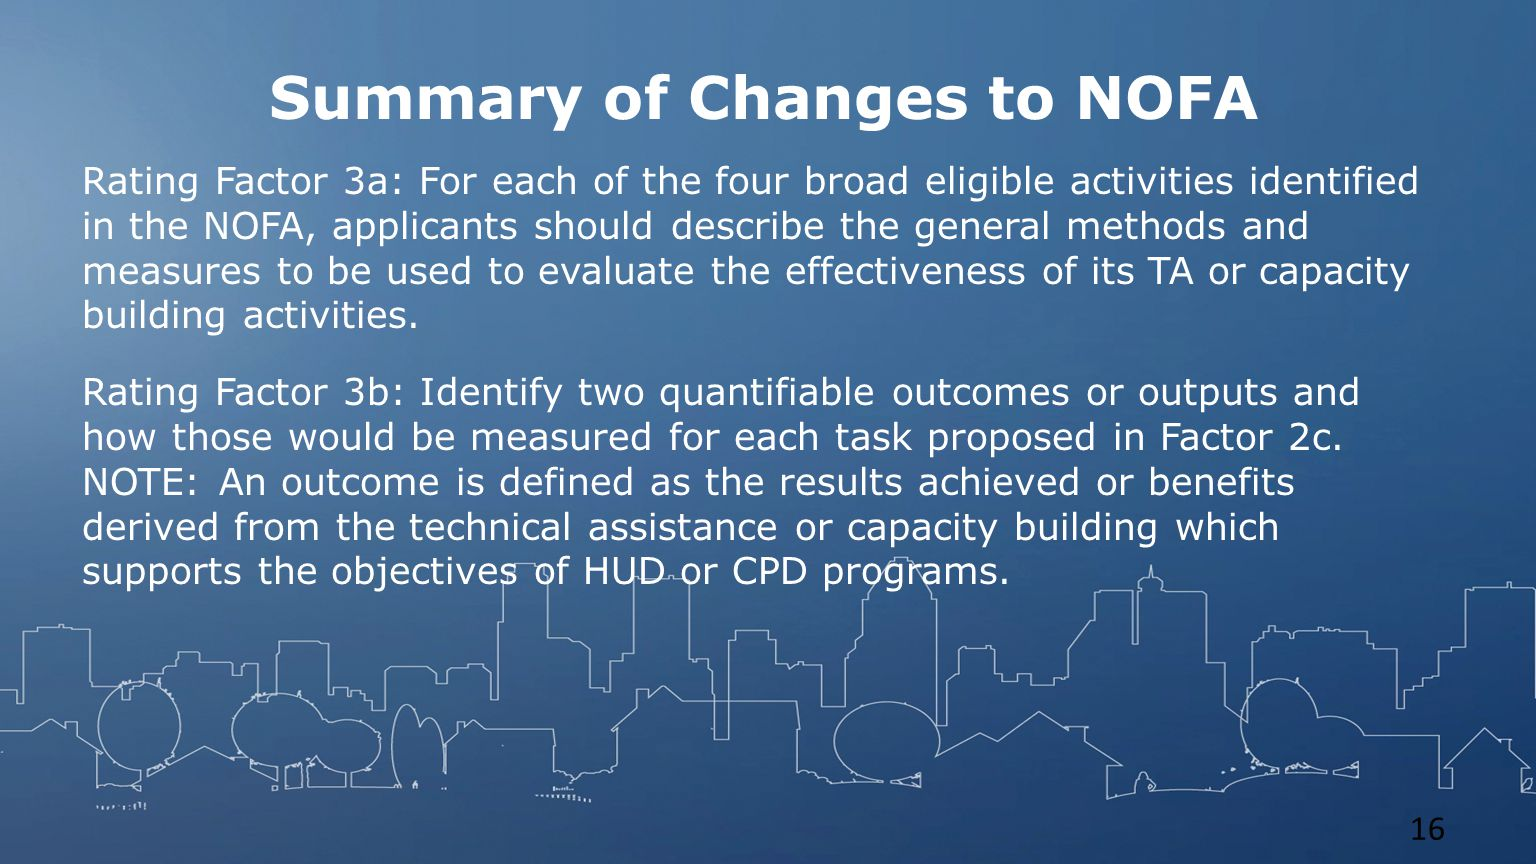 Summary of Changes to NOFA Rating Factor 3a: For each of the four broad eligible activities identified in the NOFA, applicants should describe the general methods and measures to be used to evaluate the effectiveness of its TA or capacity building activities.